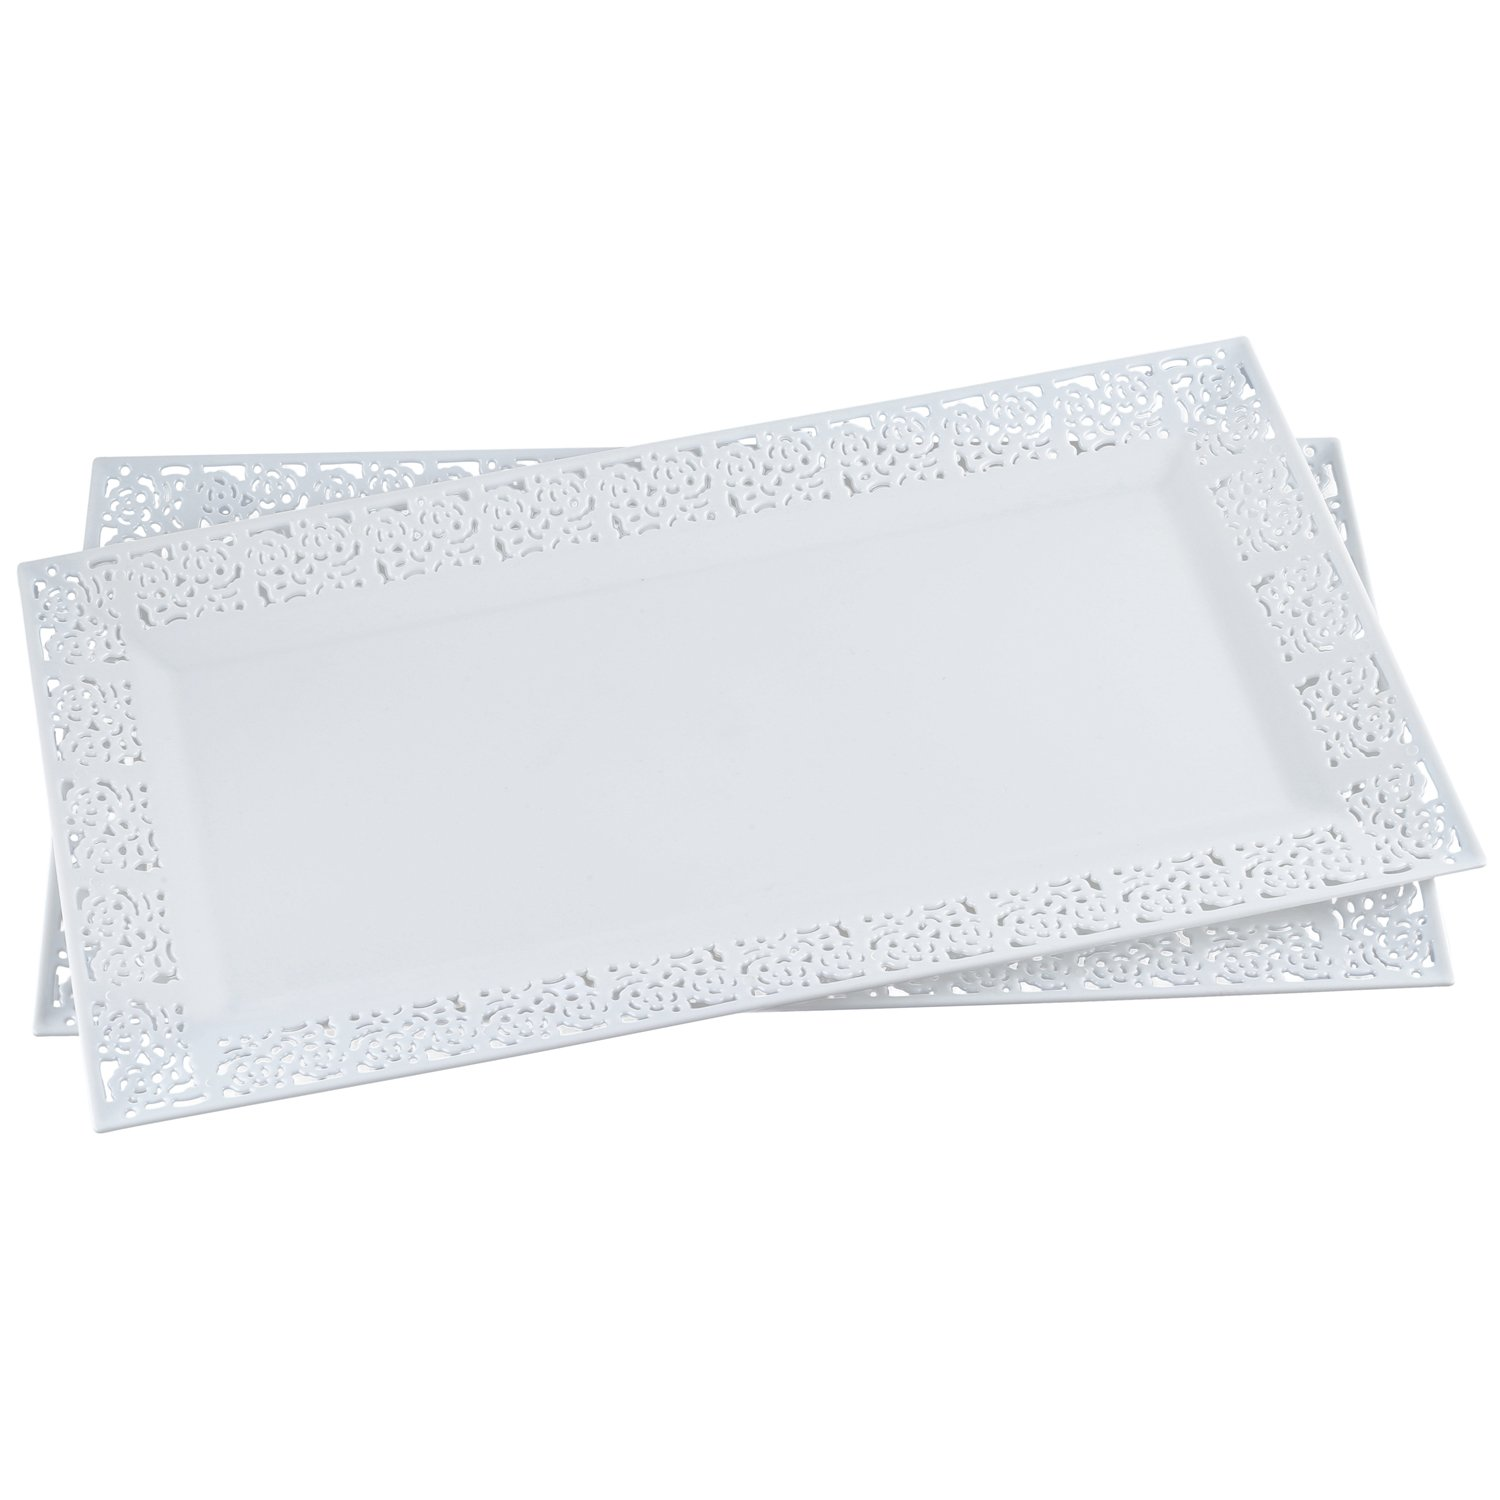 """Silver Spoons and More,white Lace Rim 14""""x7.5"""" Heavyweight Plastic Set of 2 Serving Trays"""